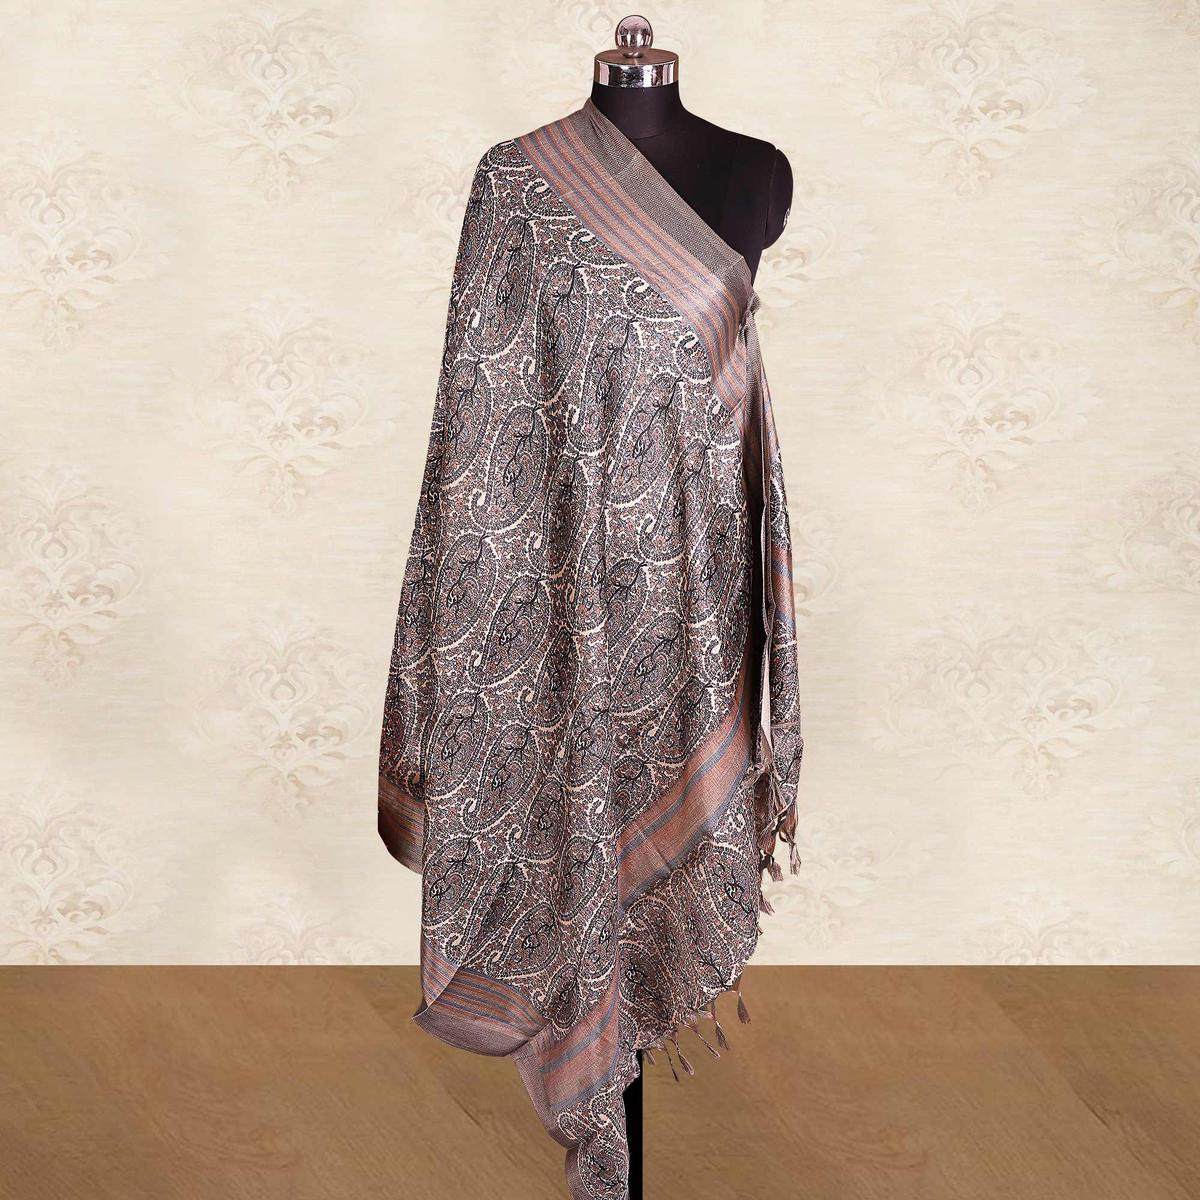 Capricious Cream-Black Colored Casual Wear Printed Cotton Blend Dupatta With Tassels